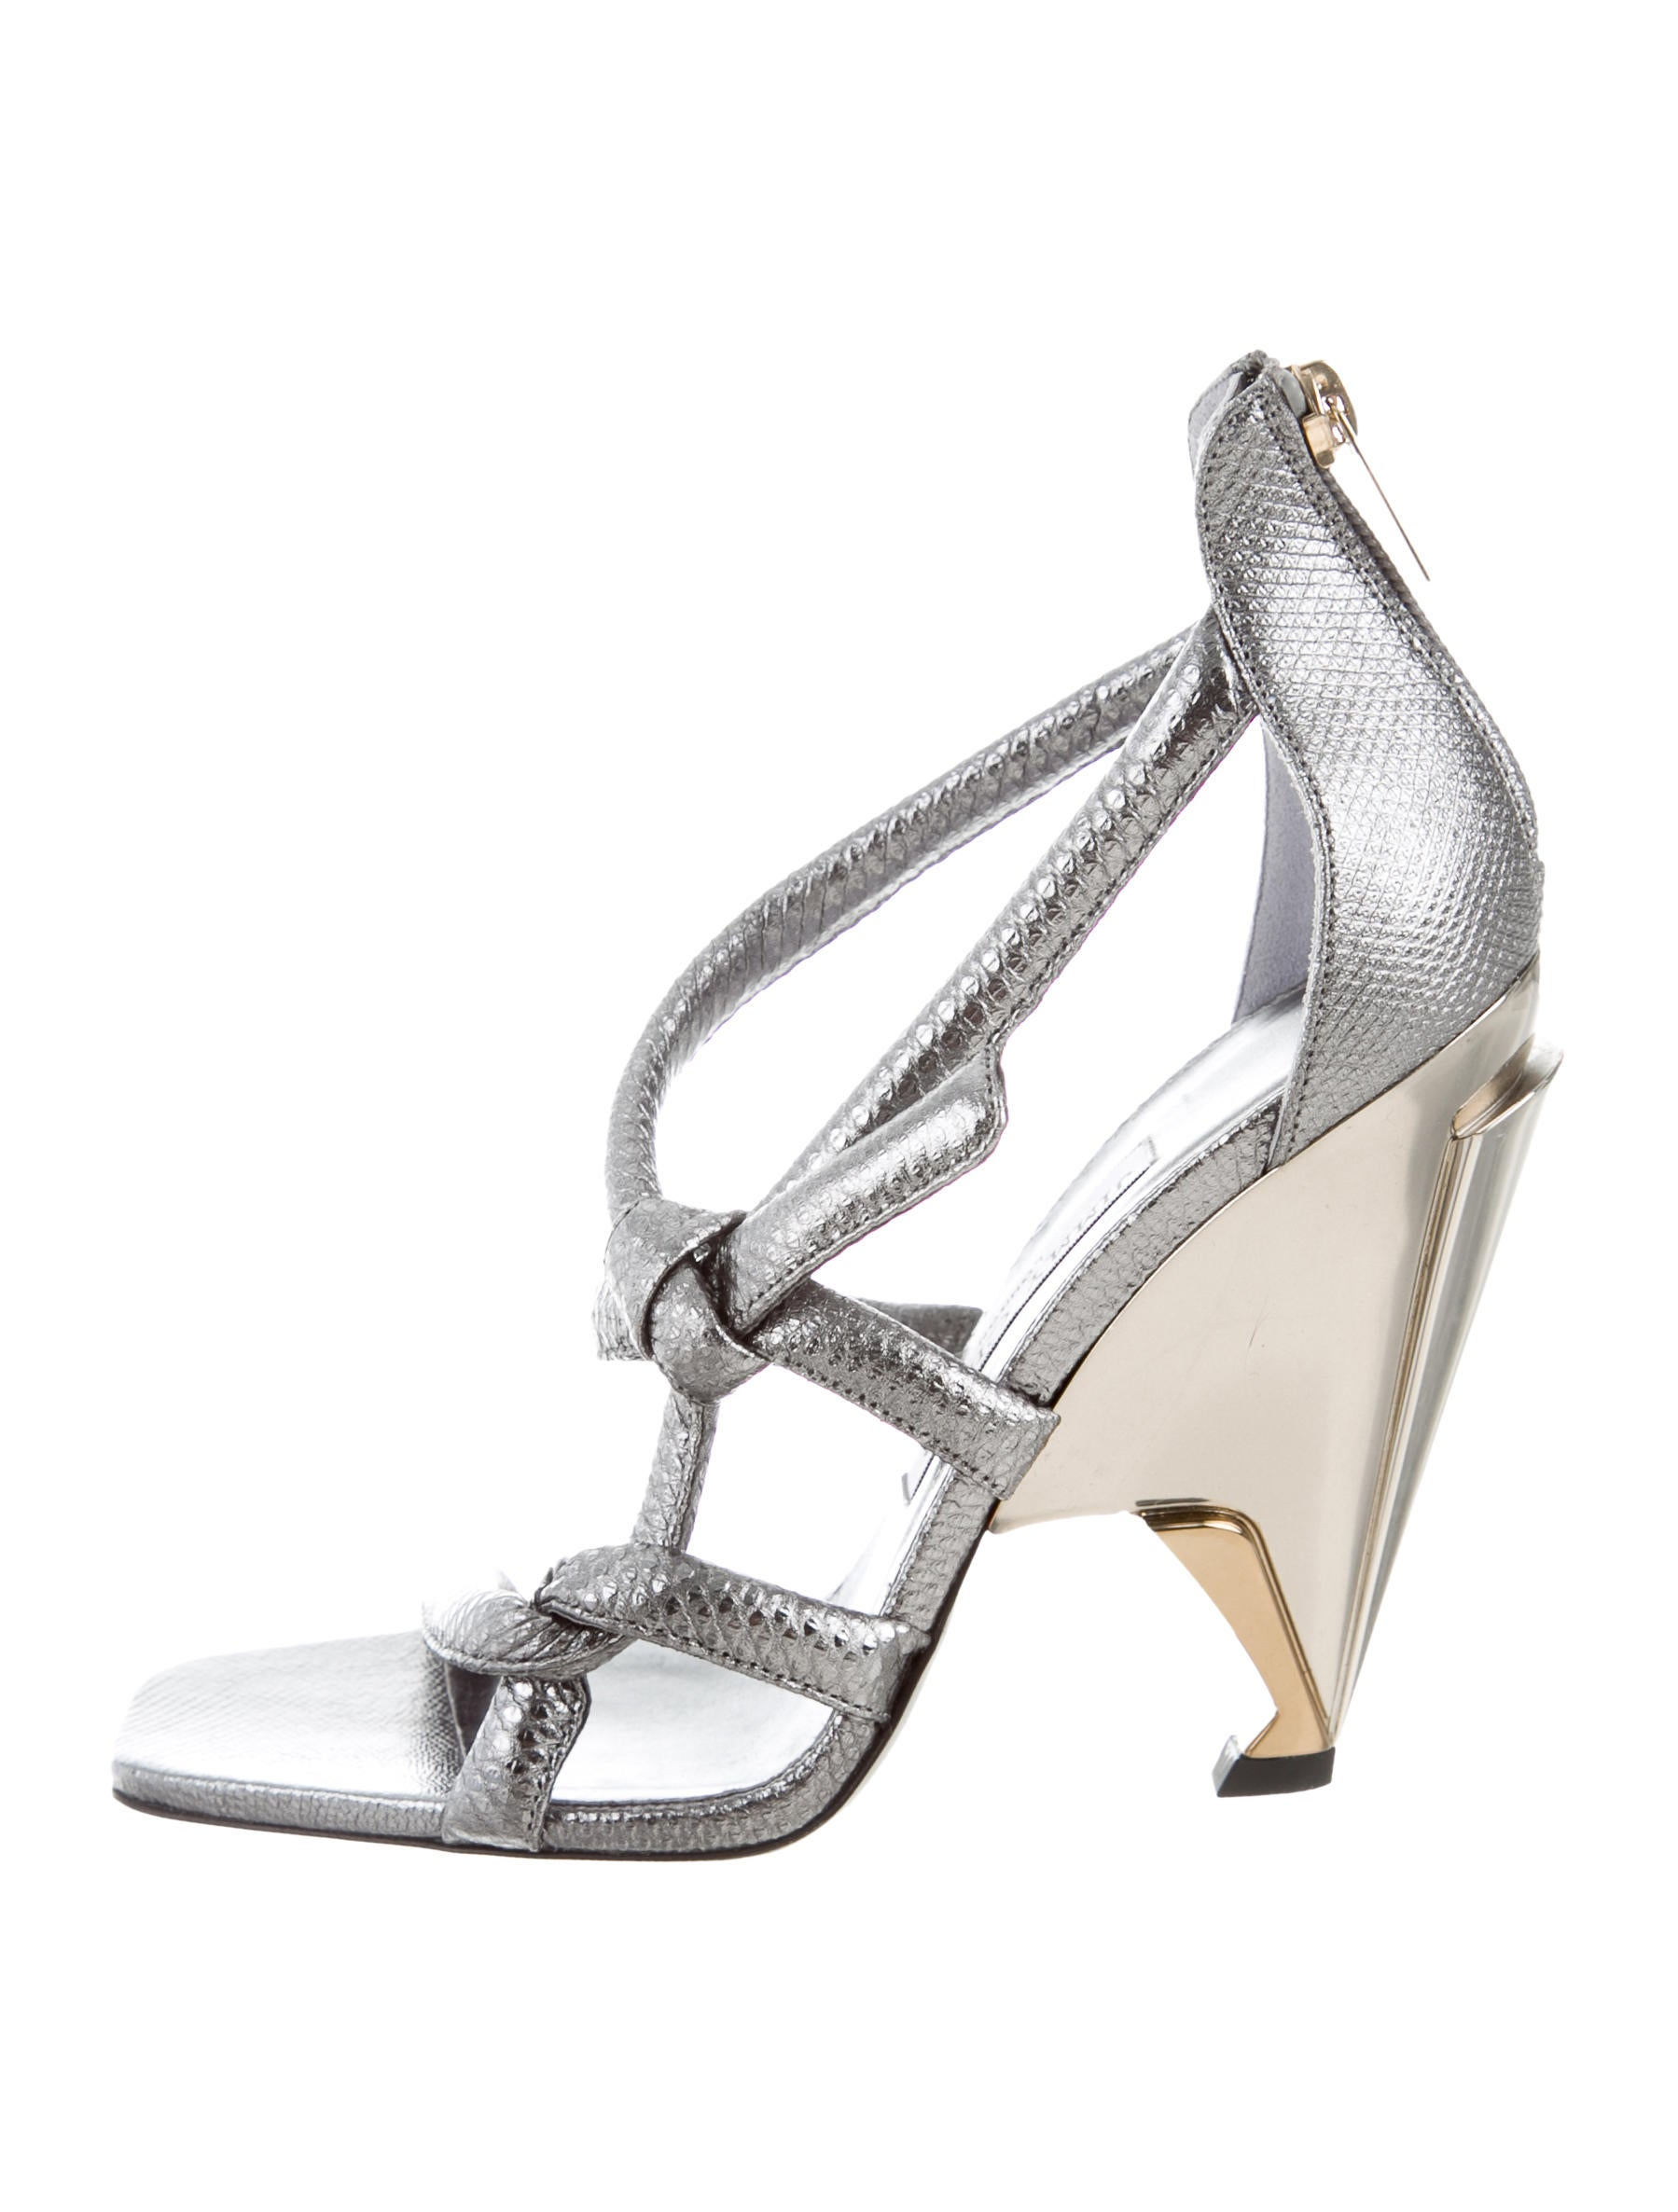 Jimmy Choo Embossed Kissy Knot Sandals sast for sale sale with paypal cheap sale choice k7n6RnsMjo